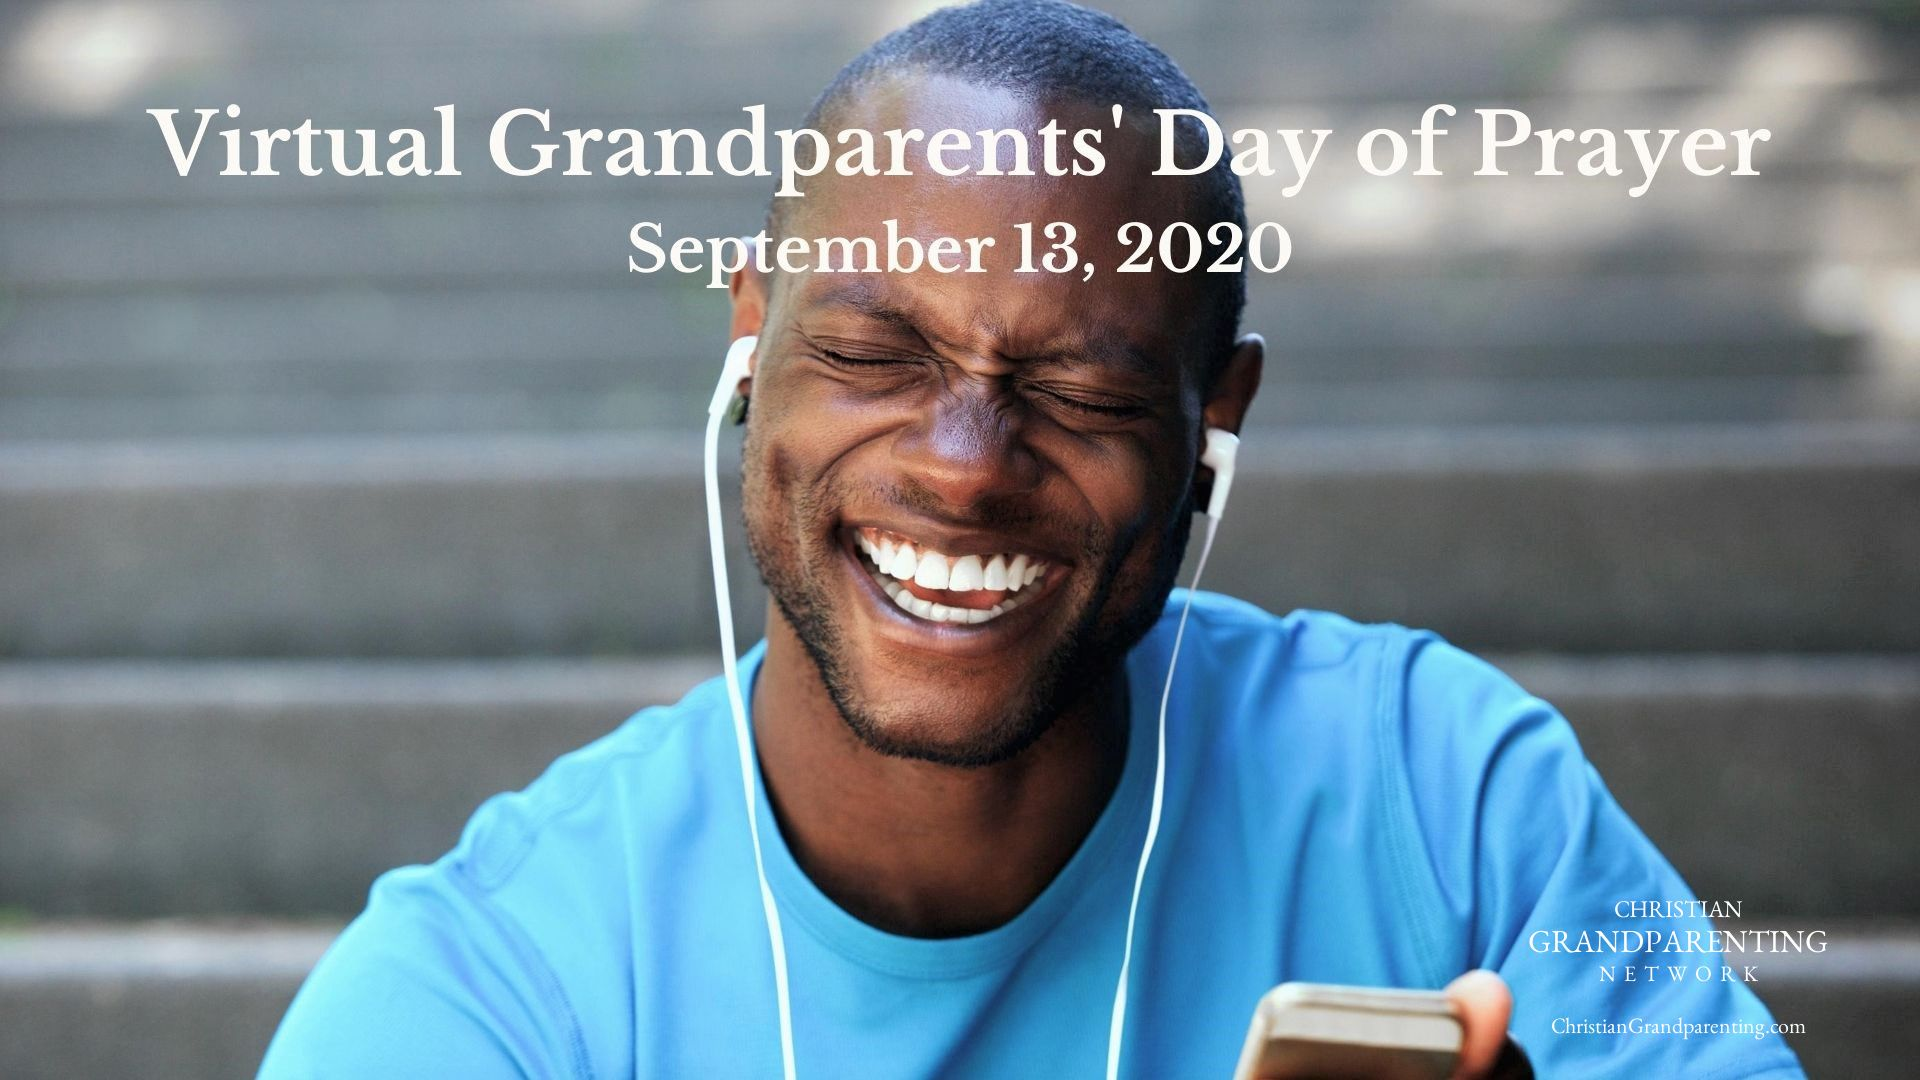 Have You Heard Of The Virtual Grandparents Day Of Prayer